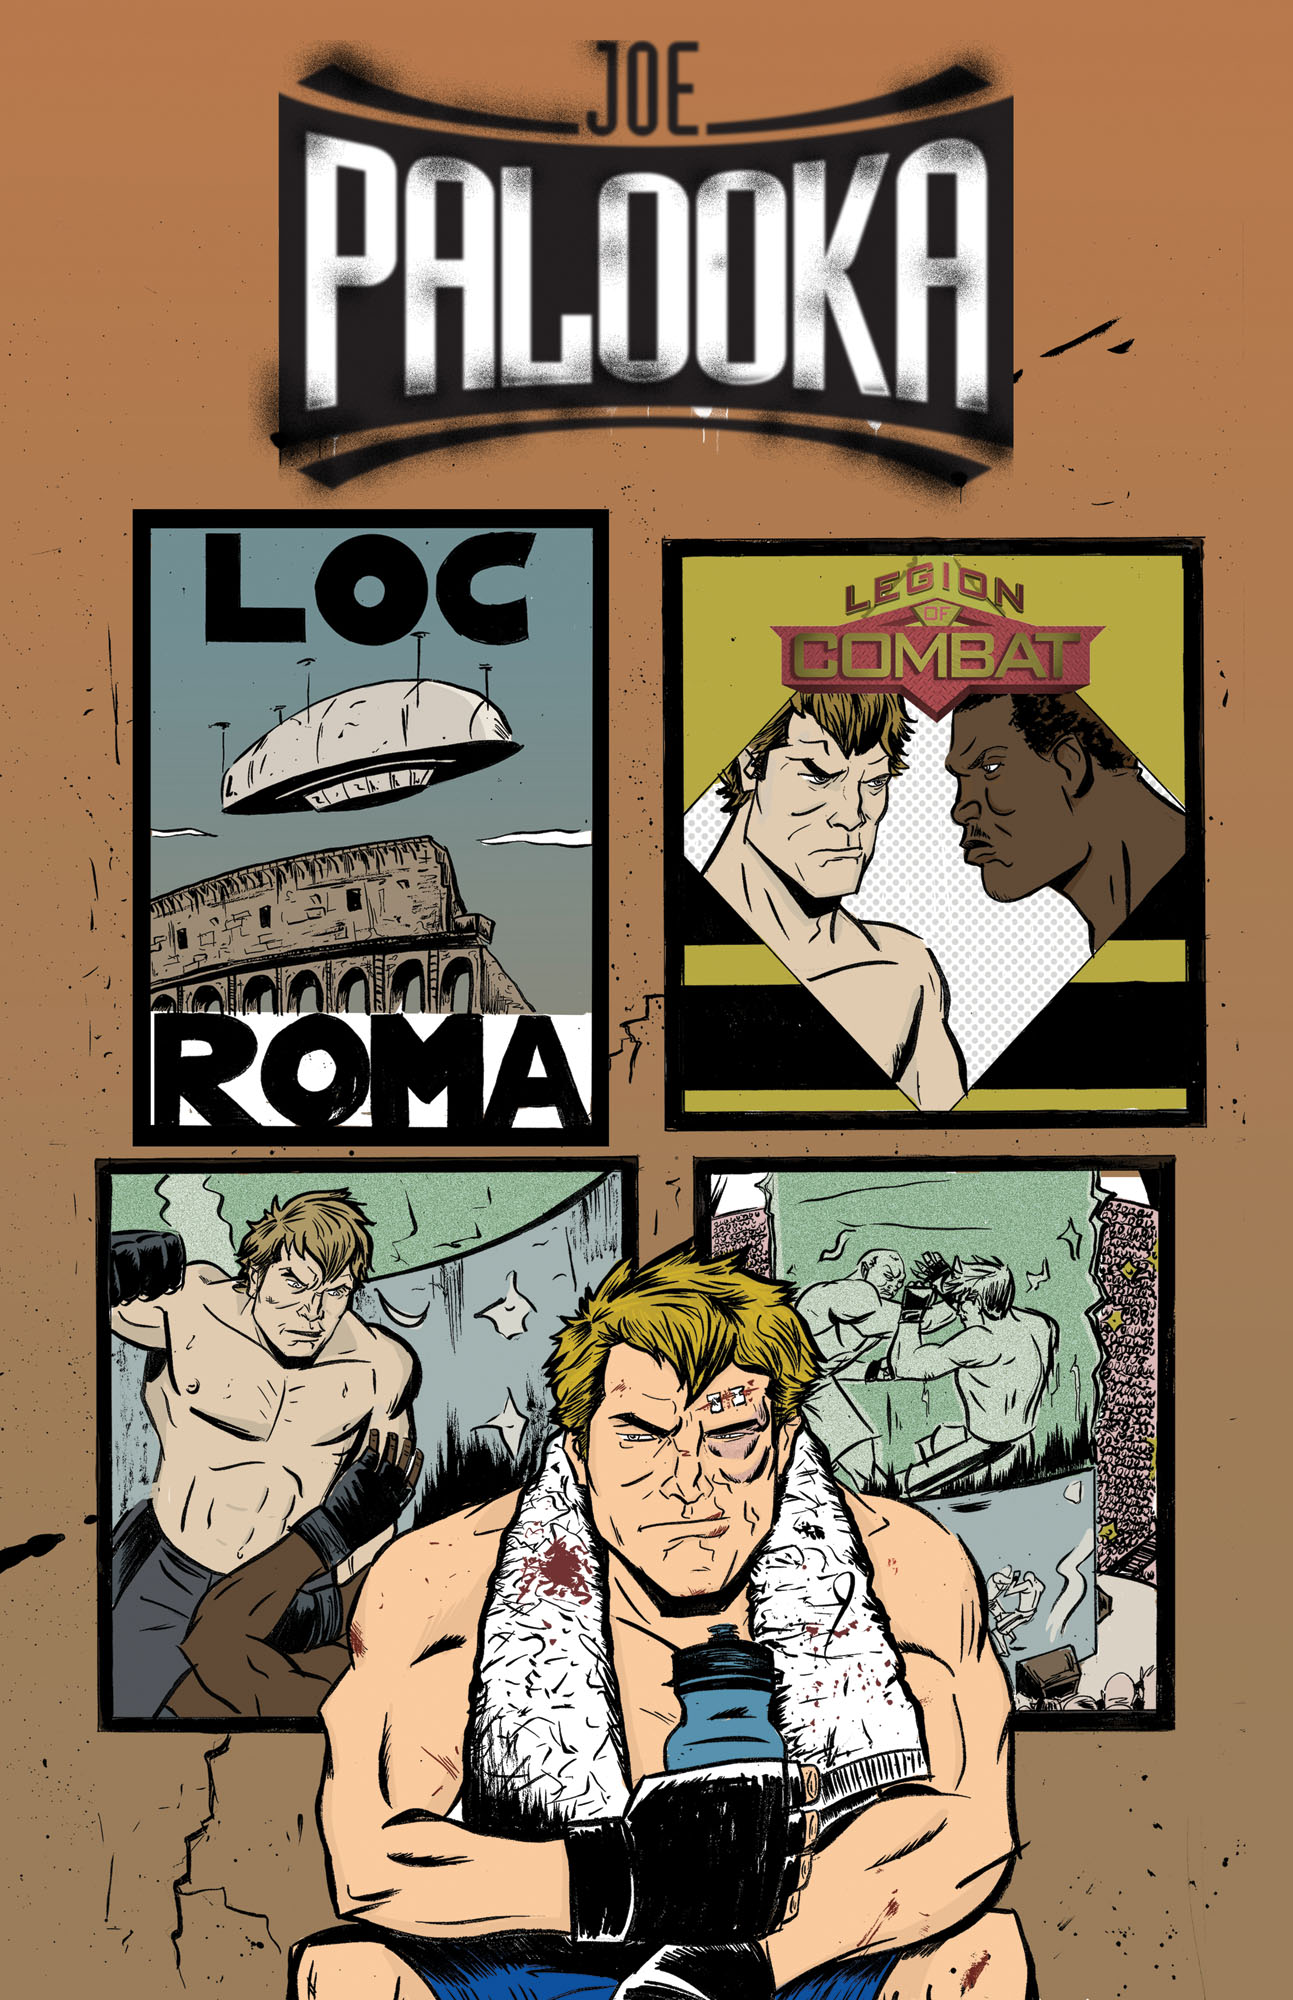 Joe Palooka #2